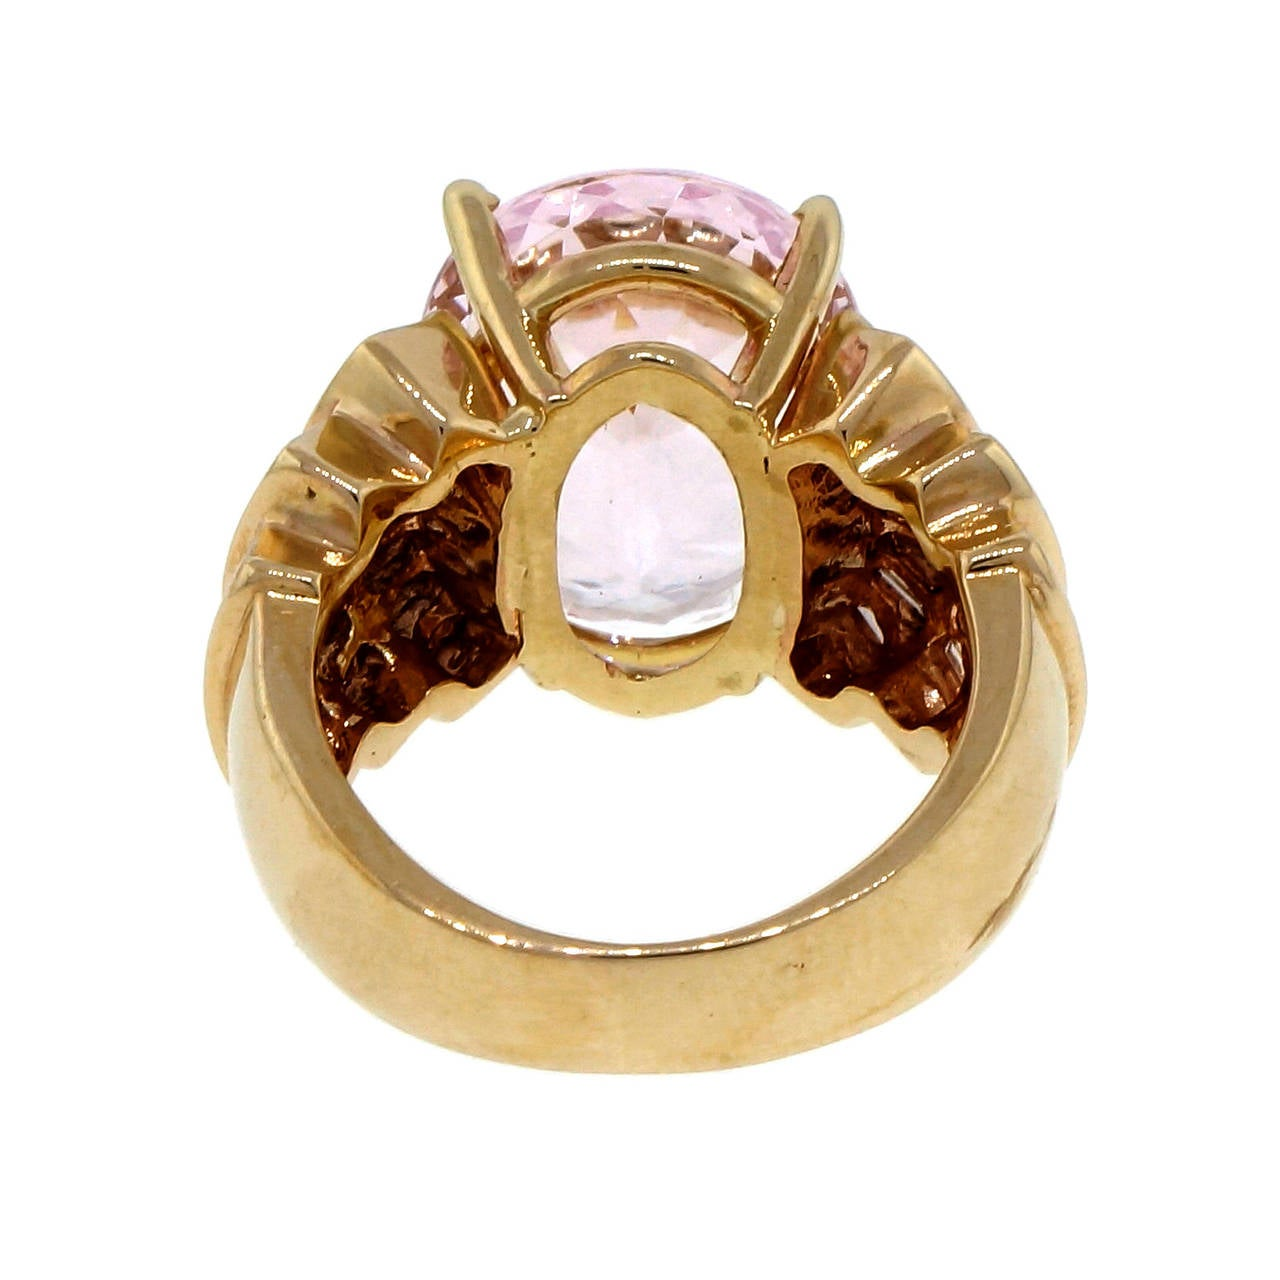 Morganite Baguette Diamond Gold Cocktail Ring For Sale at 1stdibs